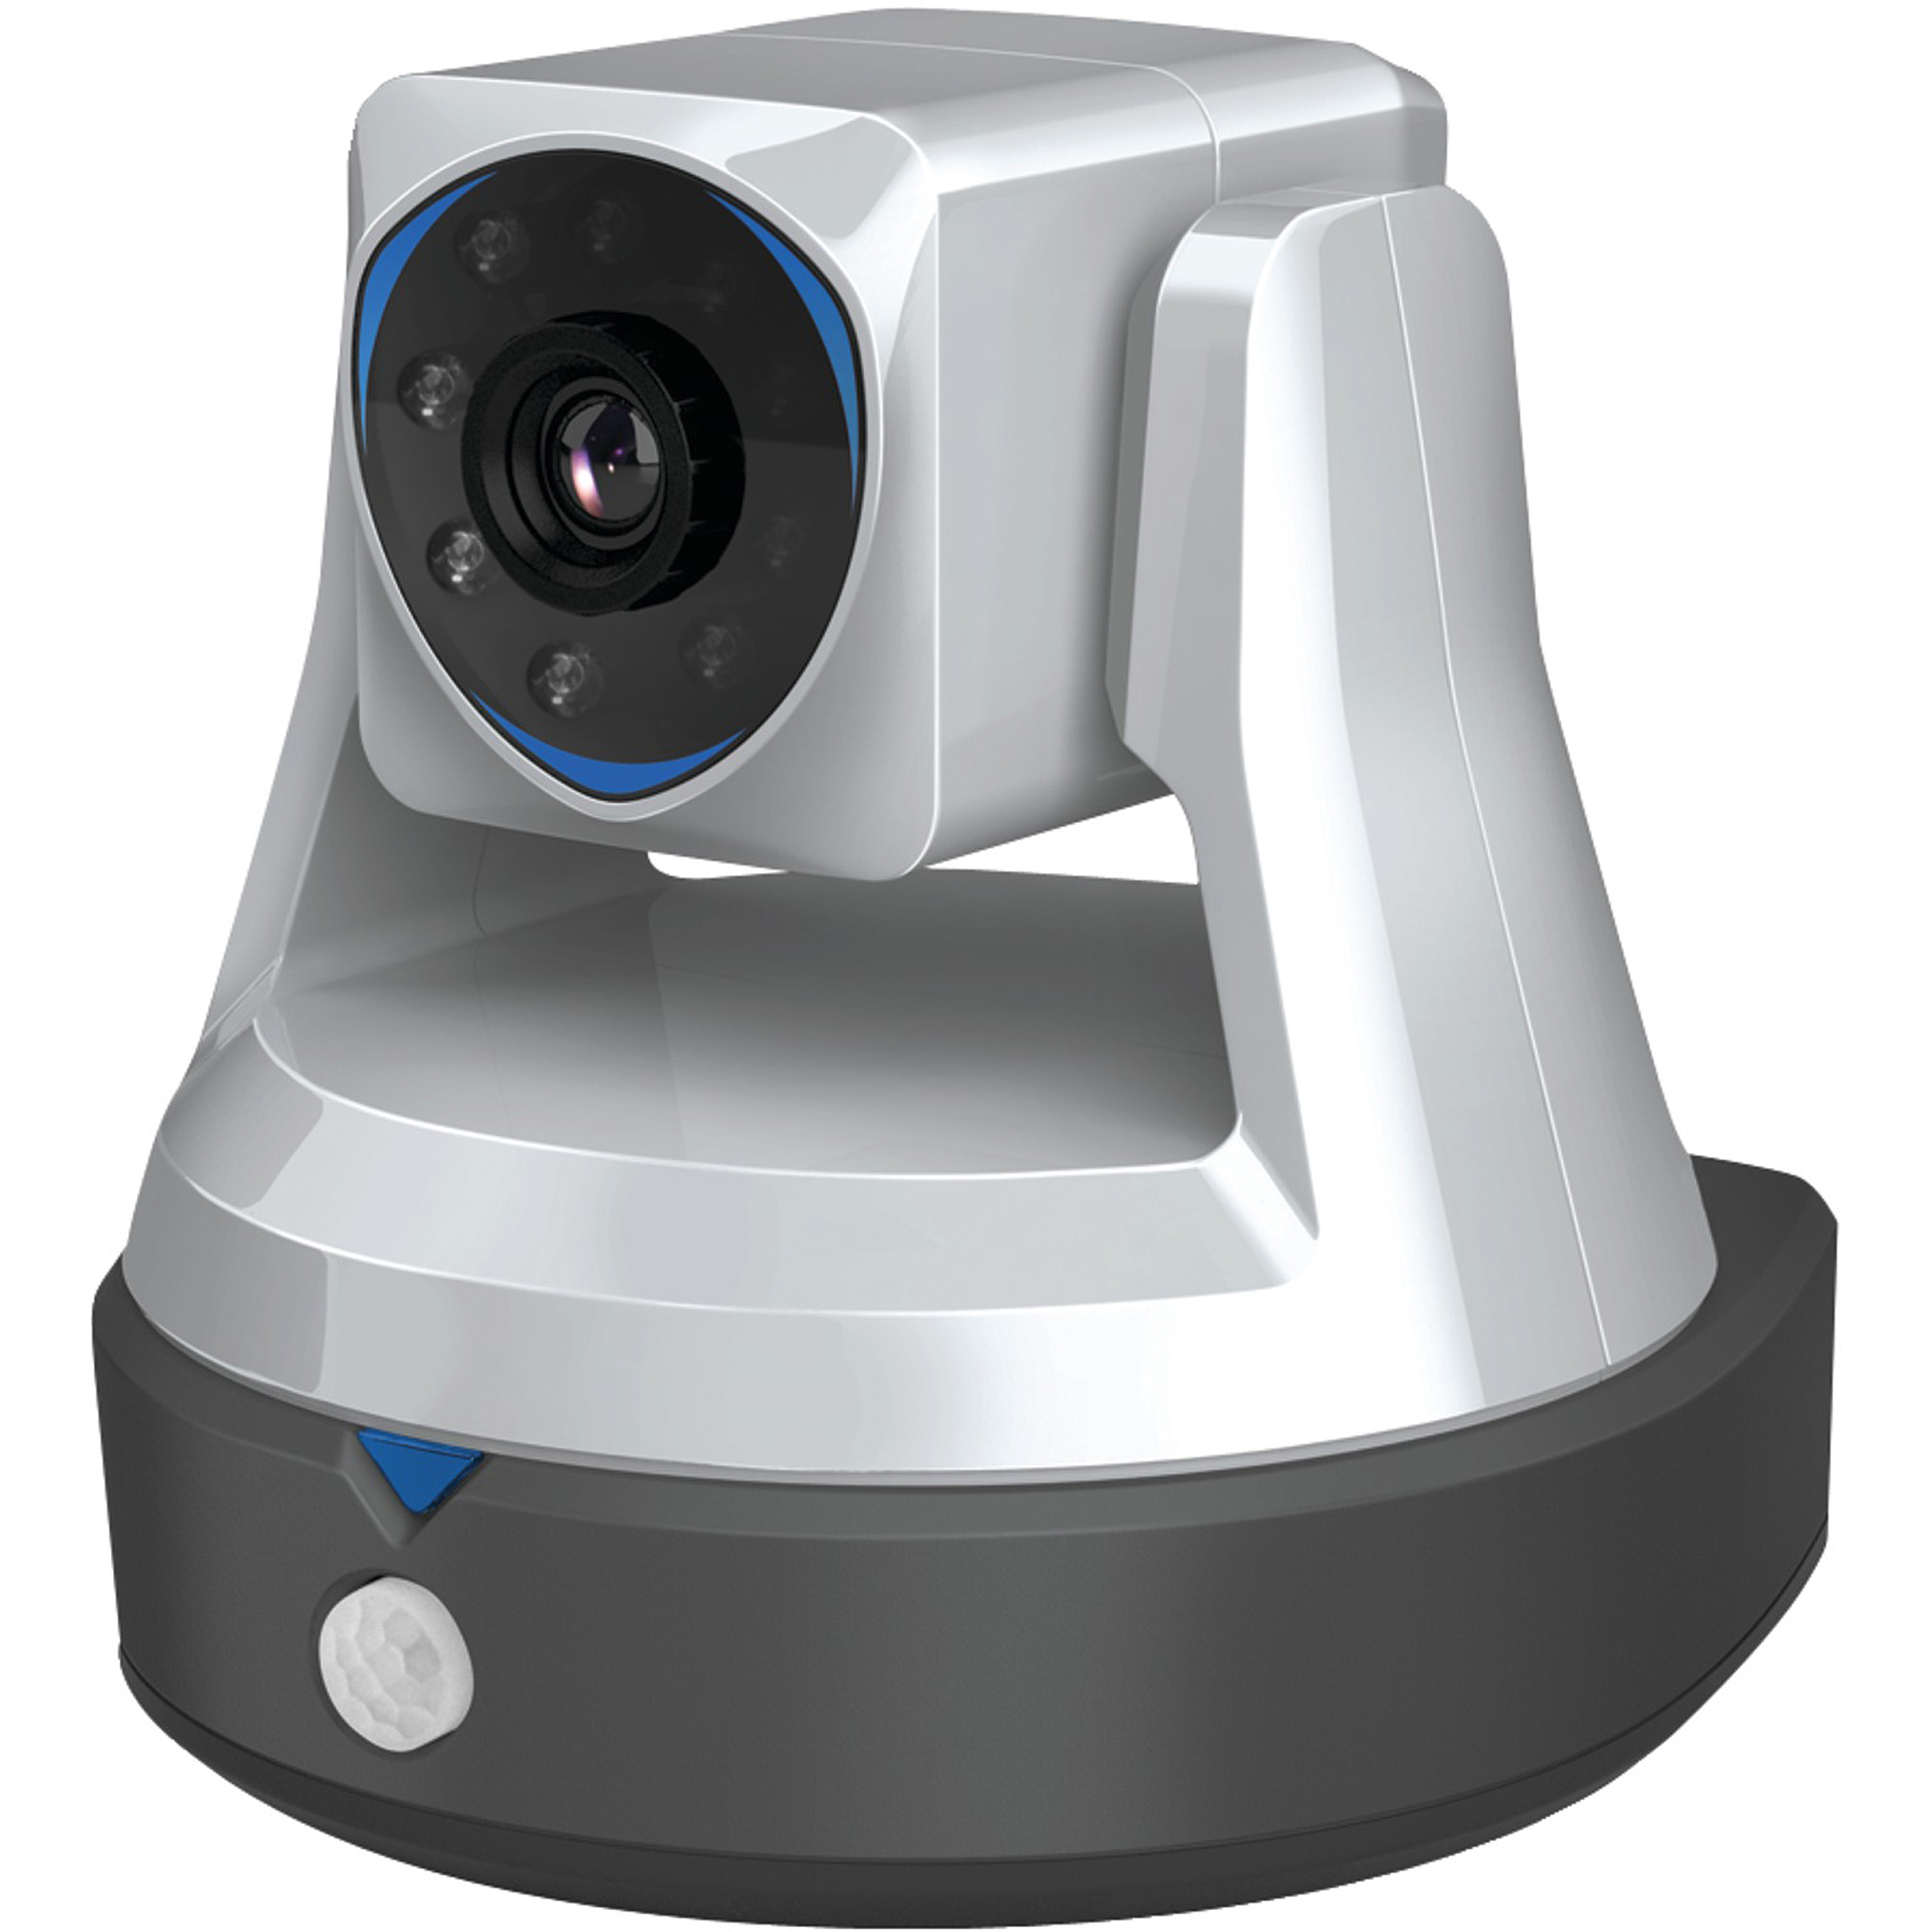 Swann Swads-446cam-us SwannCloud HD WiFi Security Camera with Smart Alerts